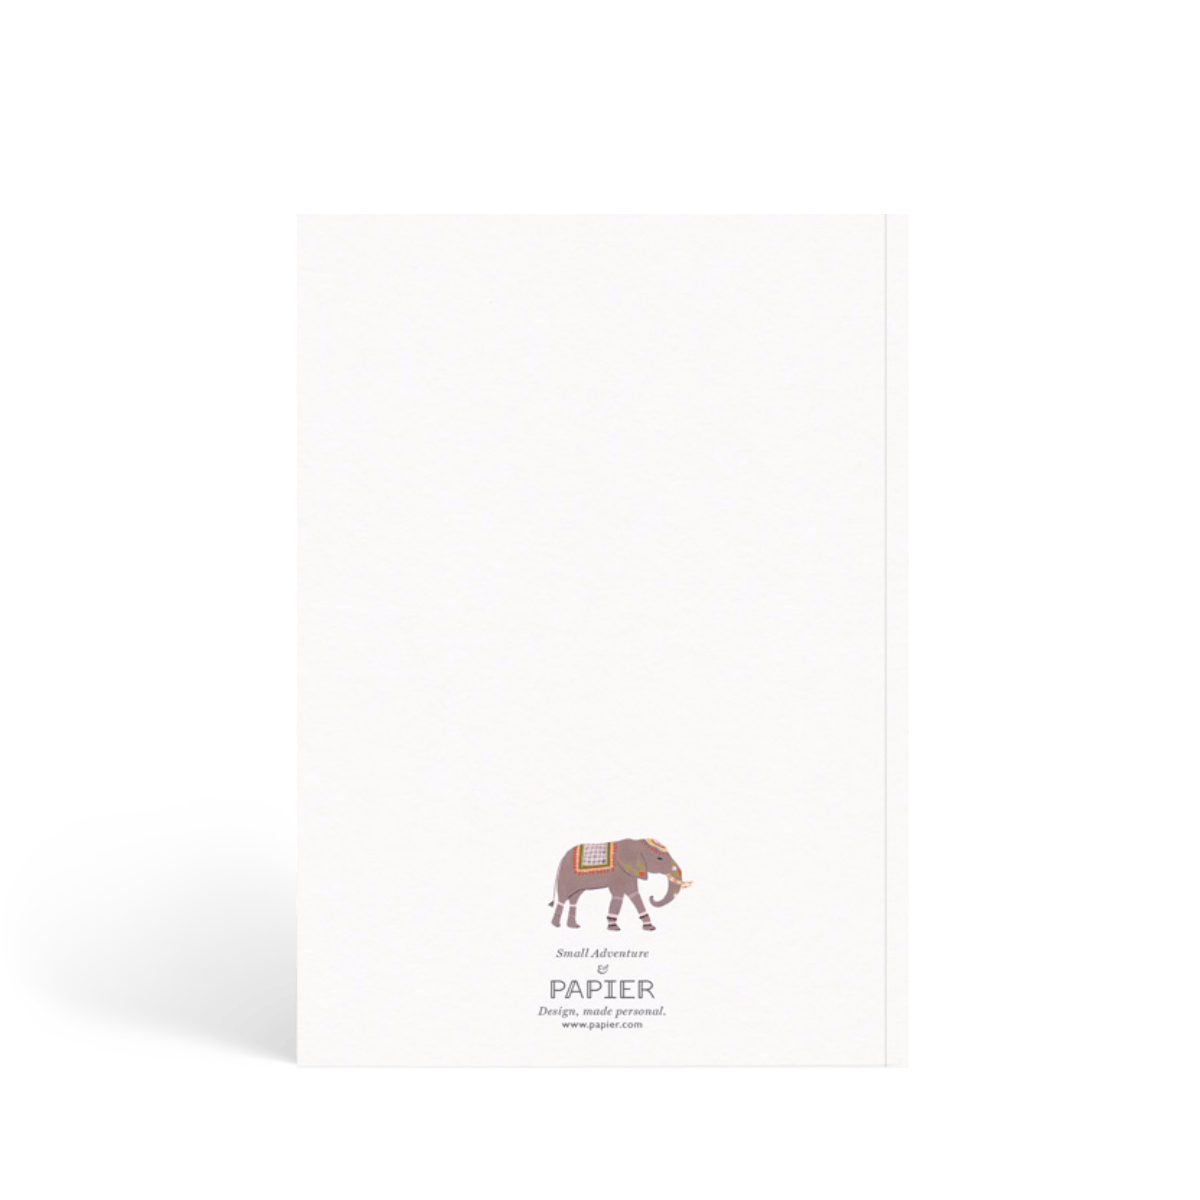 Https%3a%2f%2fwww.papier.com%2fproduct image%2f6254%2f5%2feastern elephant 1607 arriere 1461164192.png?ixlib=rb 1.1